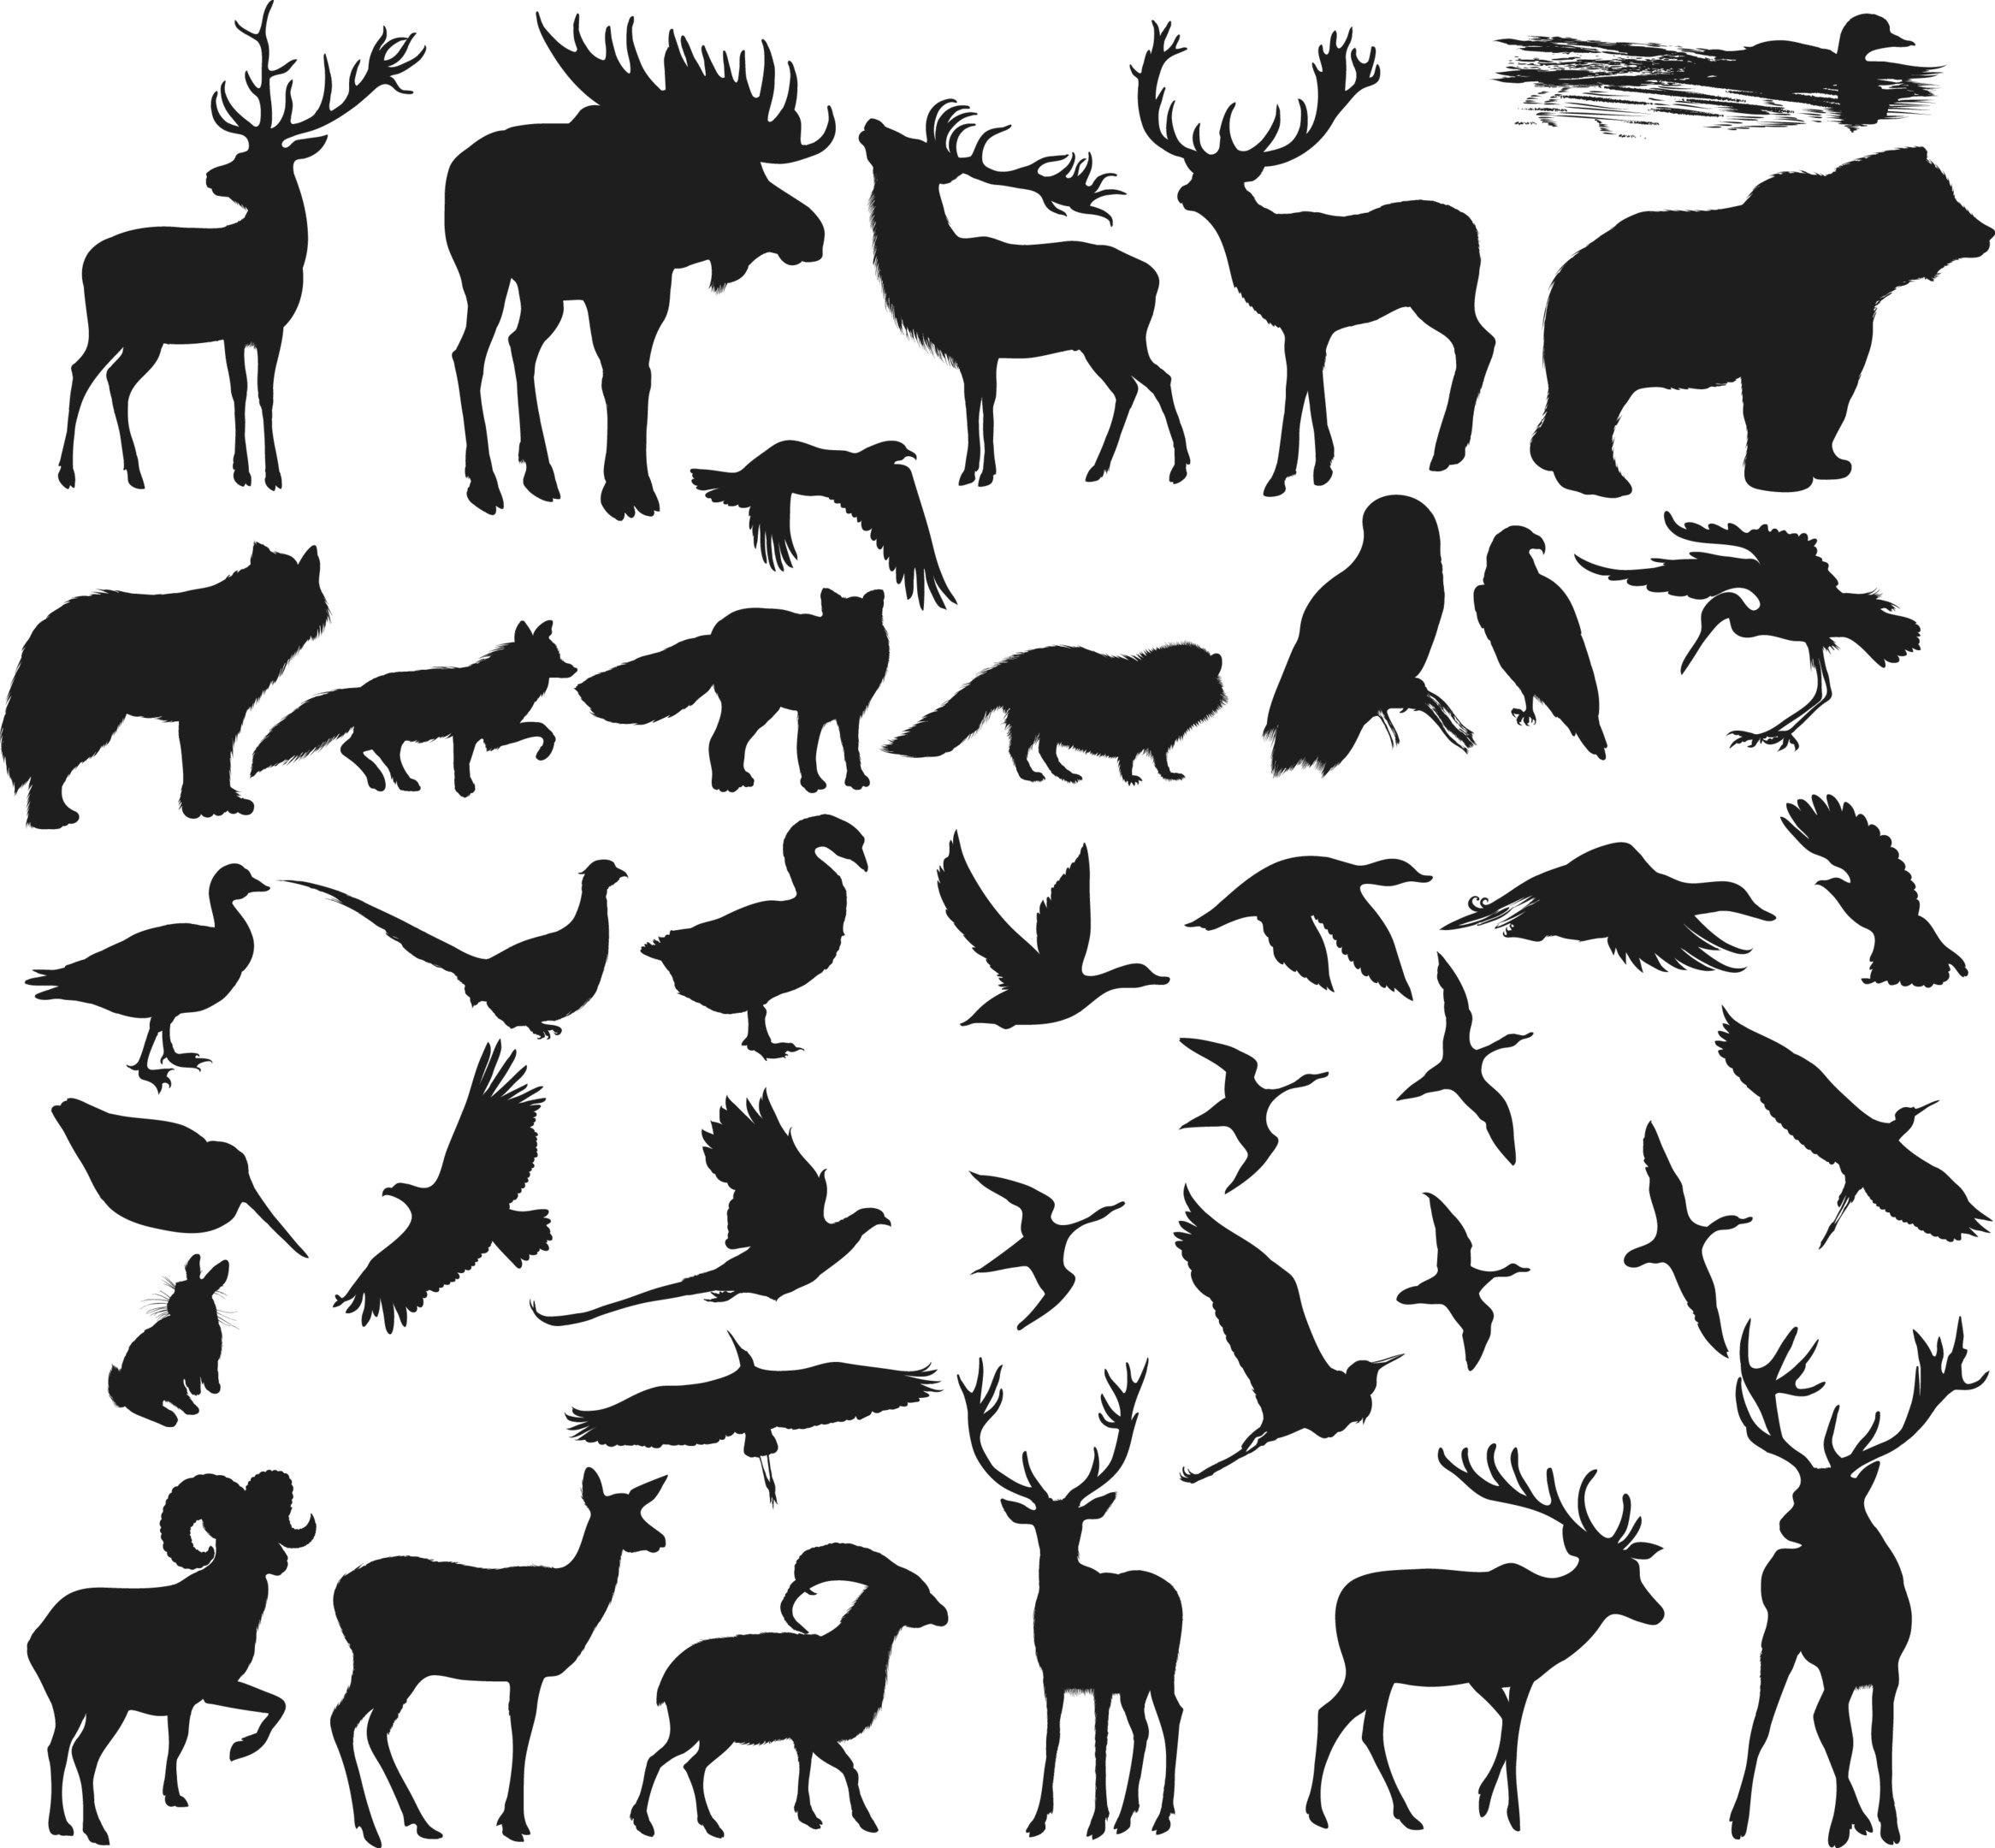 Animals Shapes Silhouettes Vectors Free Vector